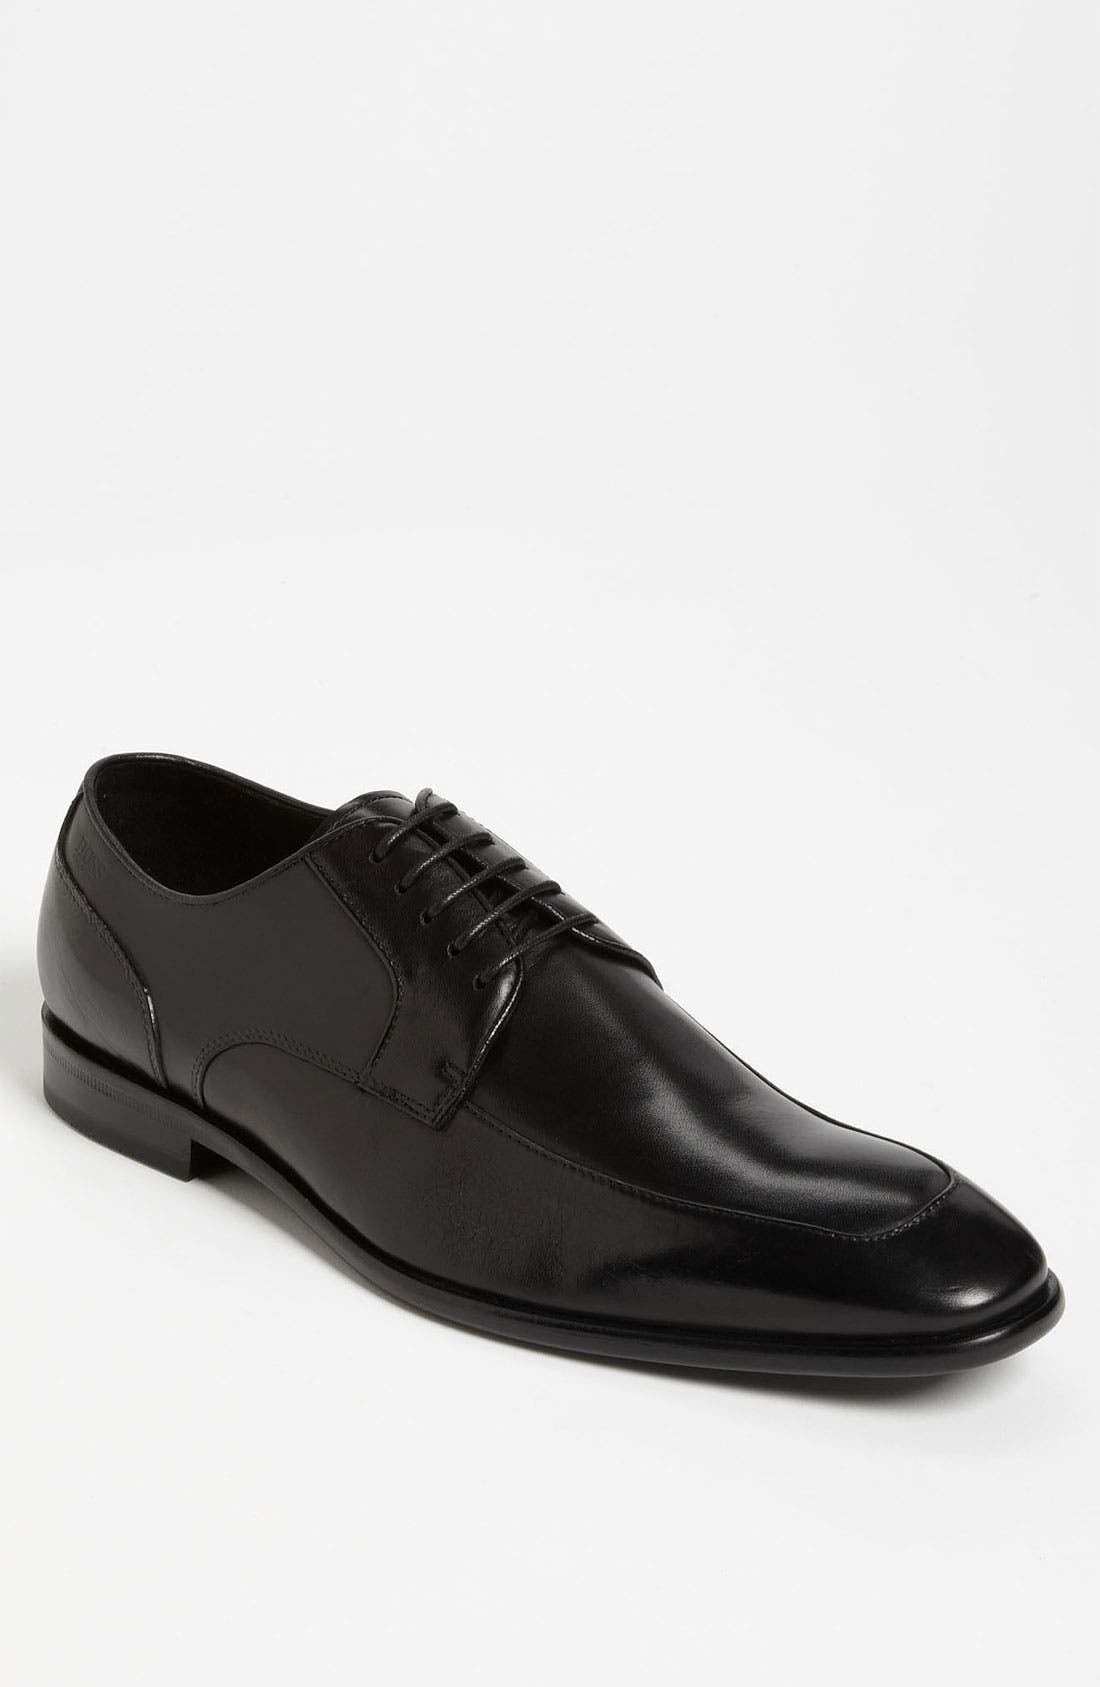 Main Image - BOSS HUGO BOSS 'Mettor' Apron Toe Derby